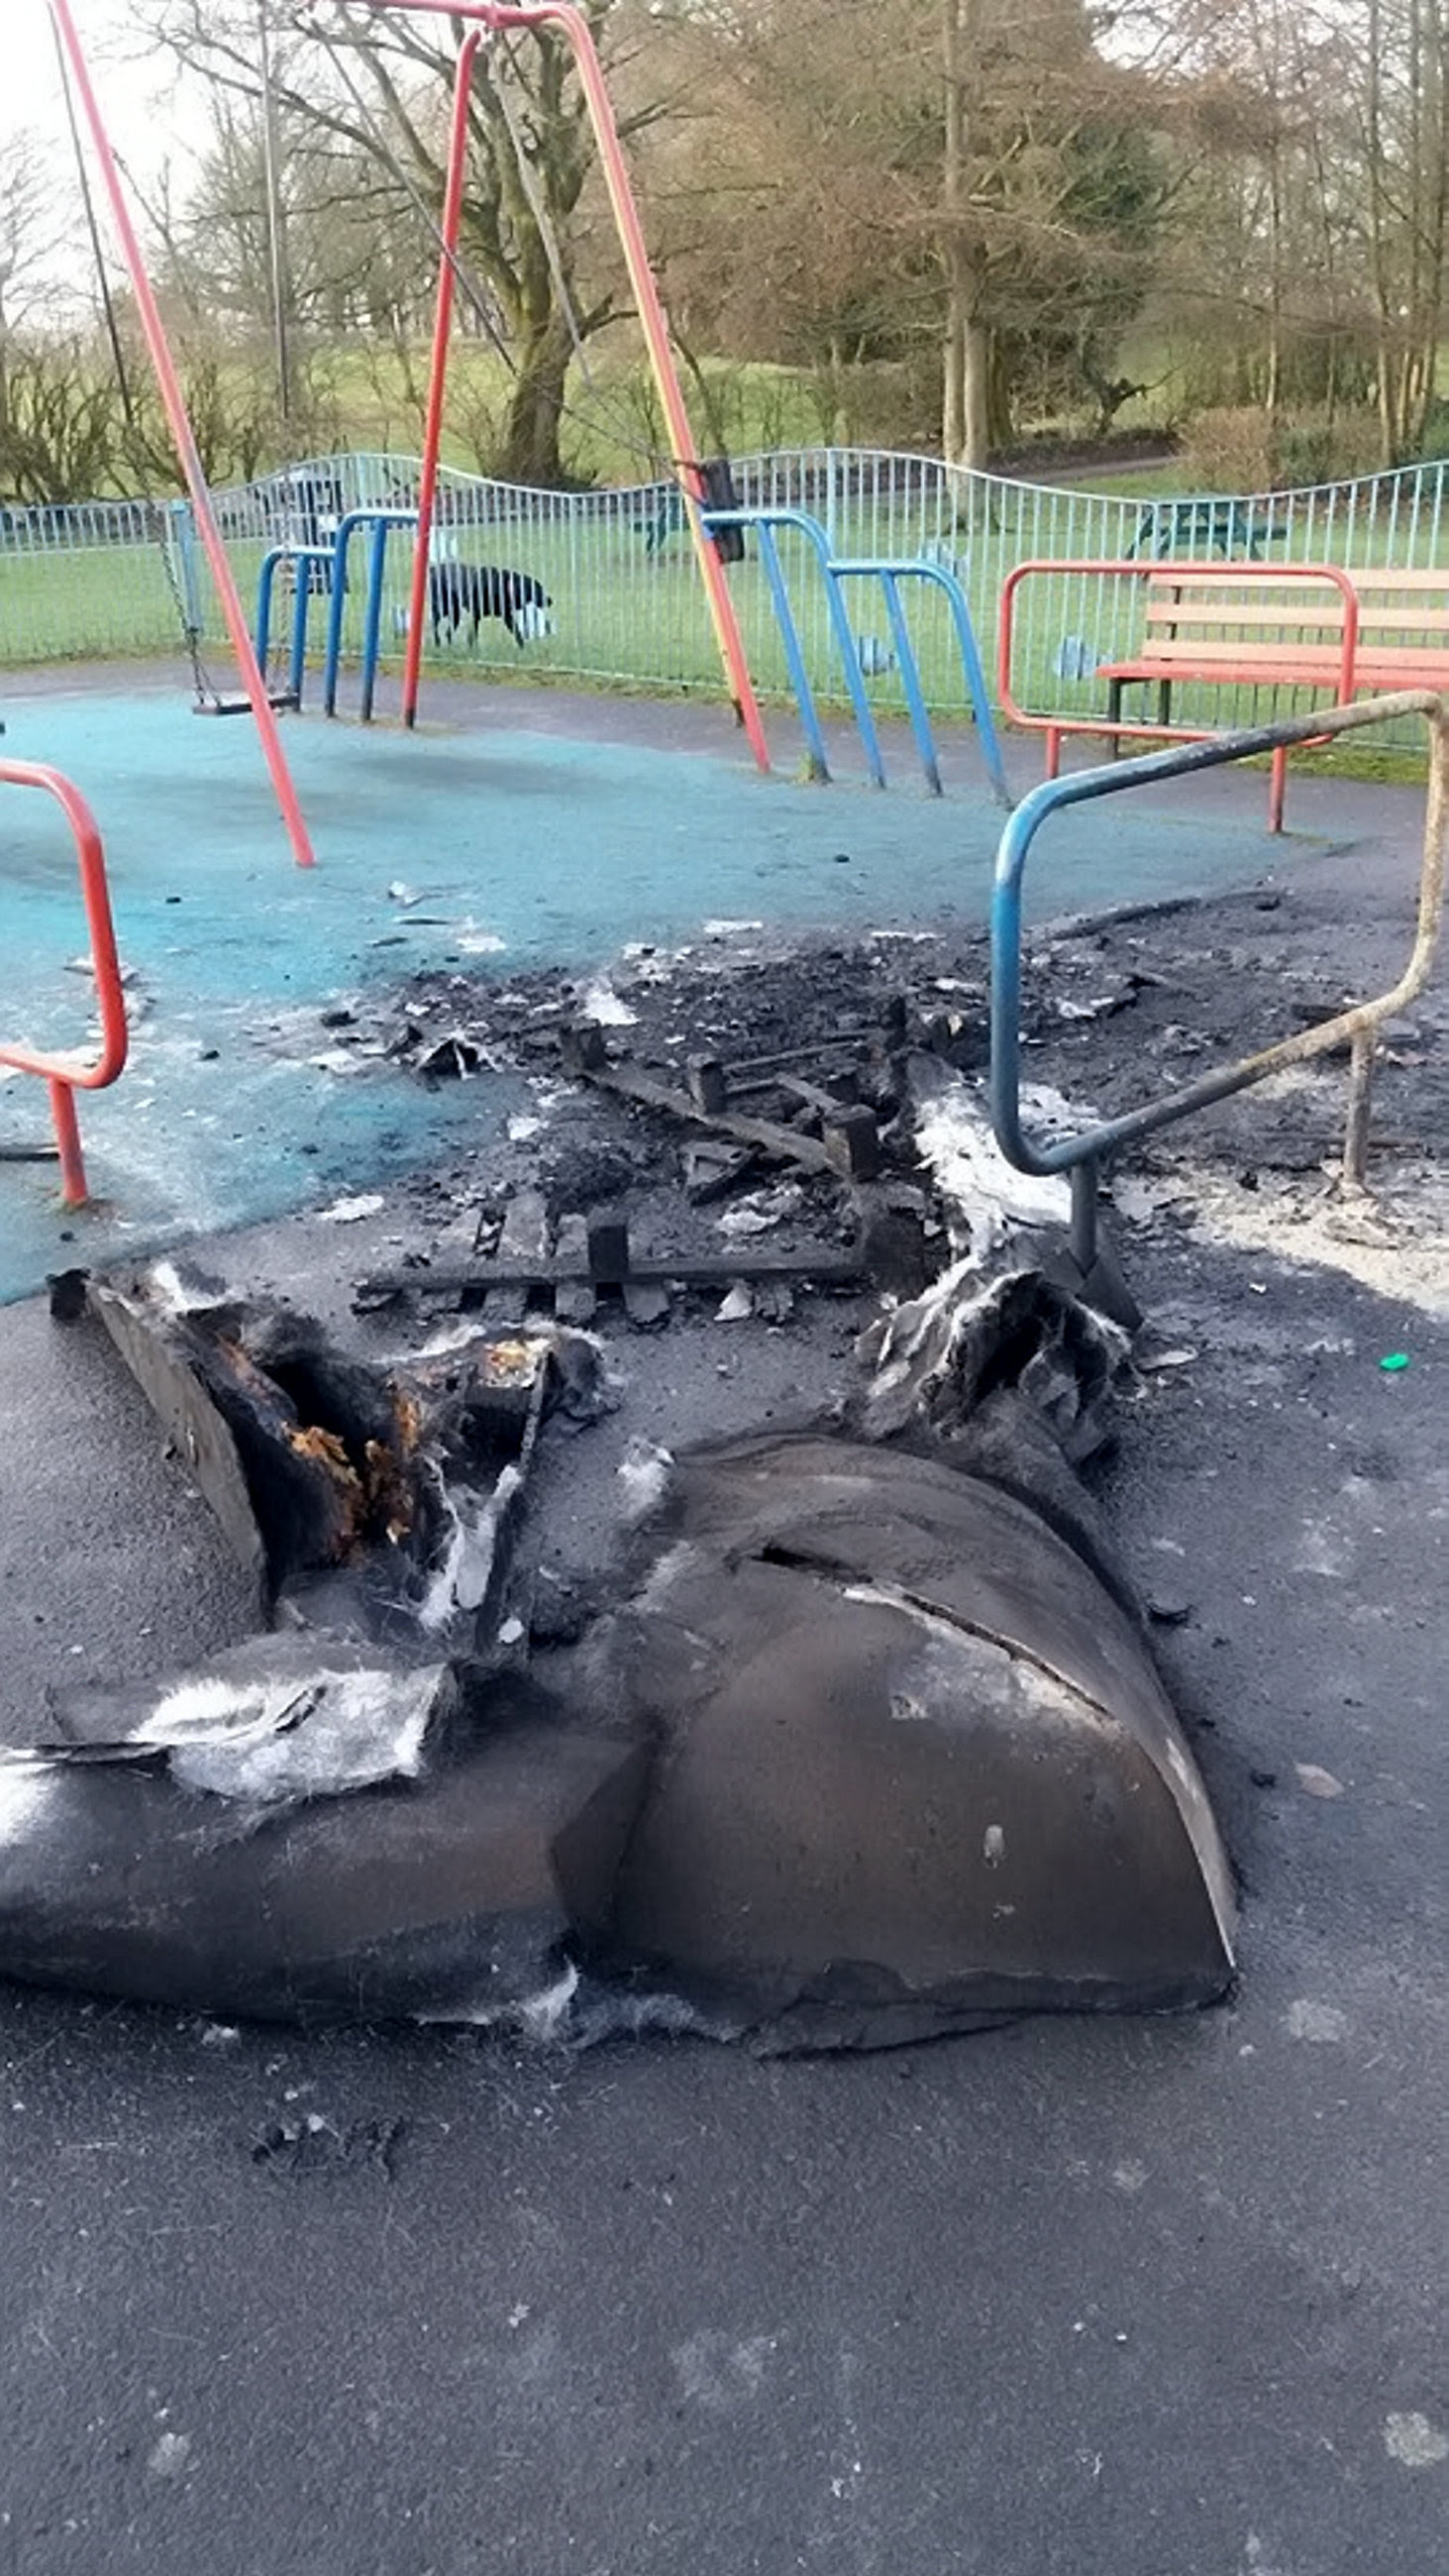 GMP have issued the warning after seeing an increase in the number of bins burned out. Credit: SWNS